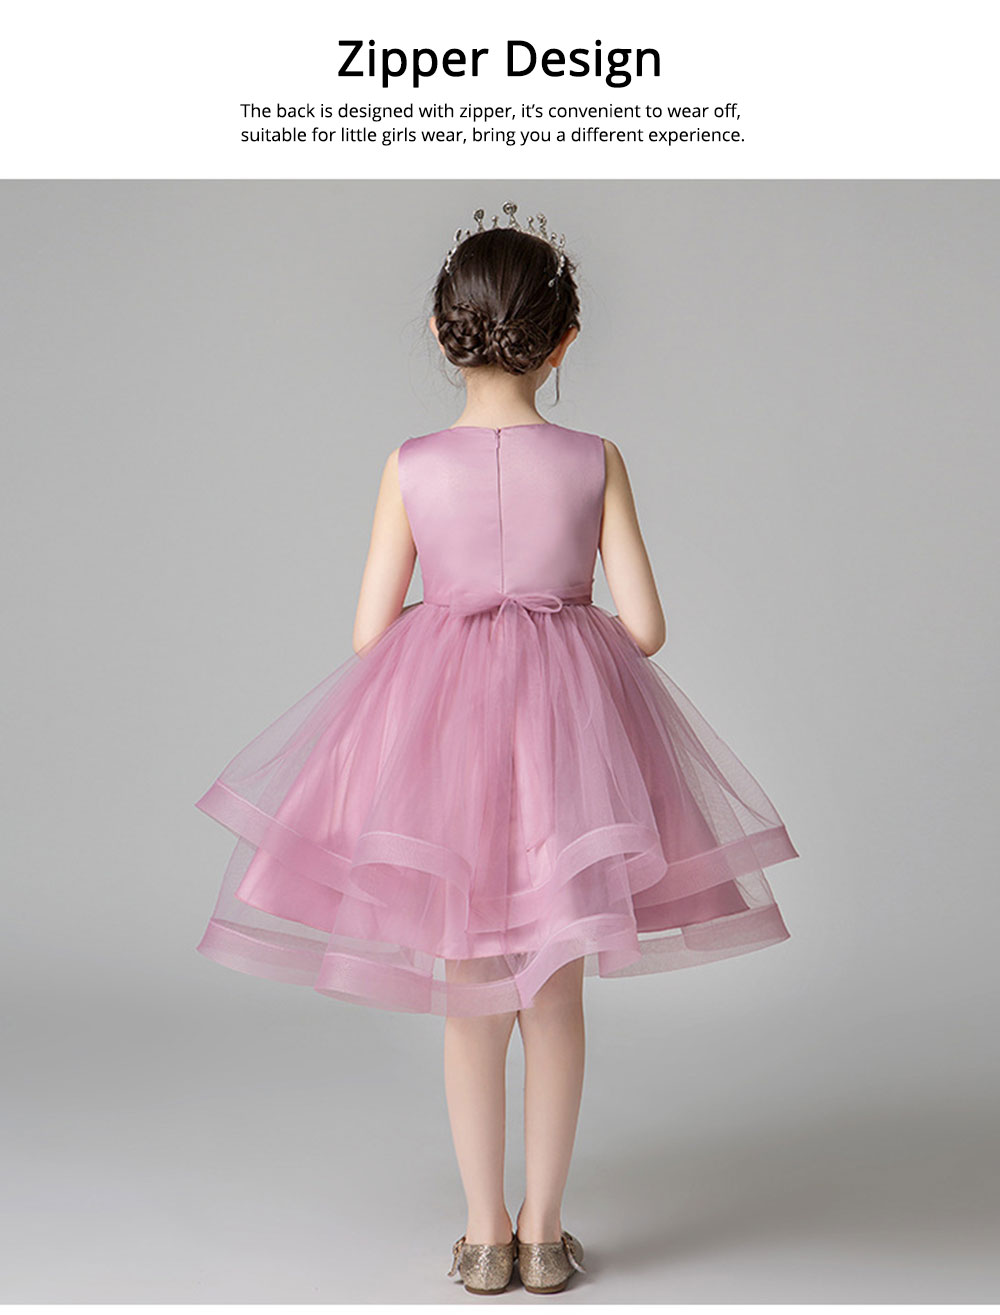 Child Evening Dress Skirt Polyester Cotton Material Round Collar Petticoat Double-layer Mesh under-dress for 3 to 8 Years Girls Spring Summer Formal Dress 2